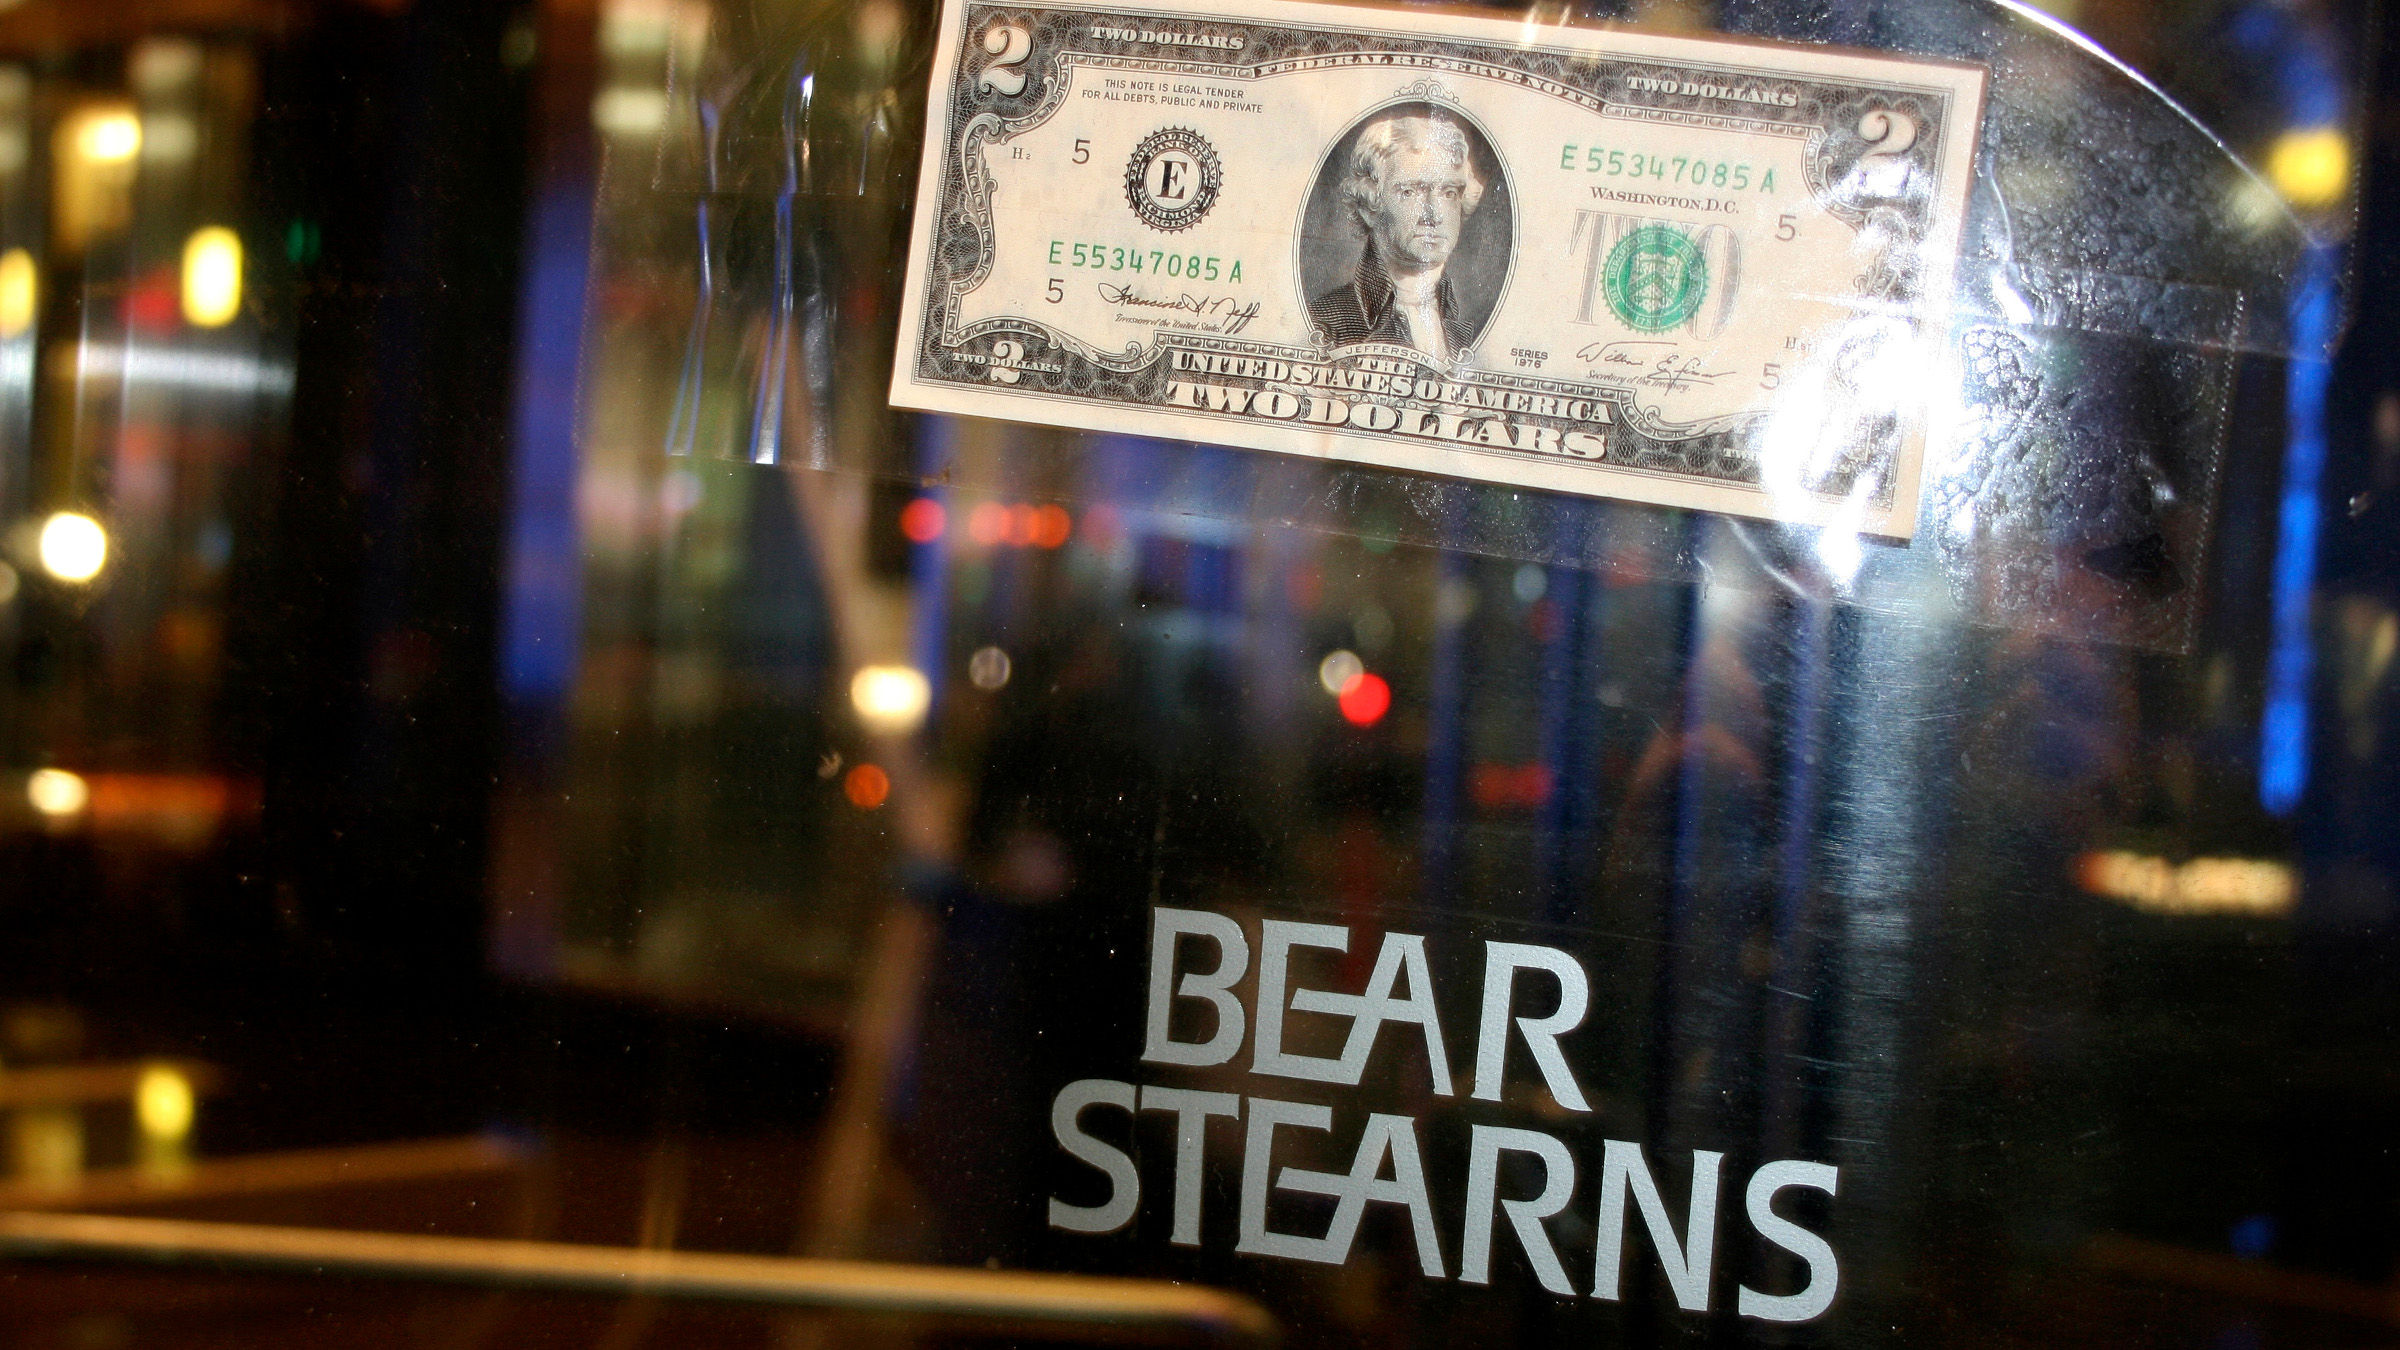 A U.S. two dollar bill is taped to the revolving door leading to the Bear Stearns global headquarters in New York March 17, 2008. JPMorgan Chase & Co said on Sunday it would buy stricken rival Bear Stearns for just $2 a share in an all-stock deal that values the U.S. investment bank at the centre of the credit crisis at about $236 million.